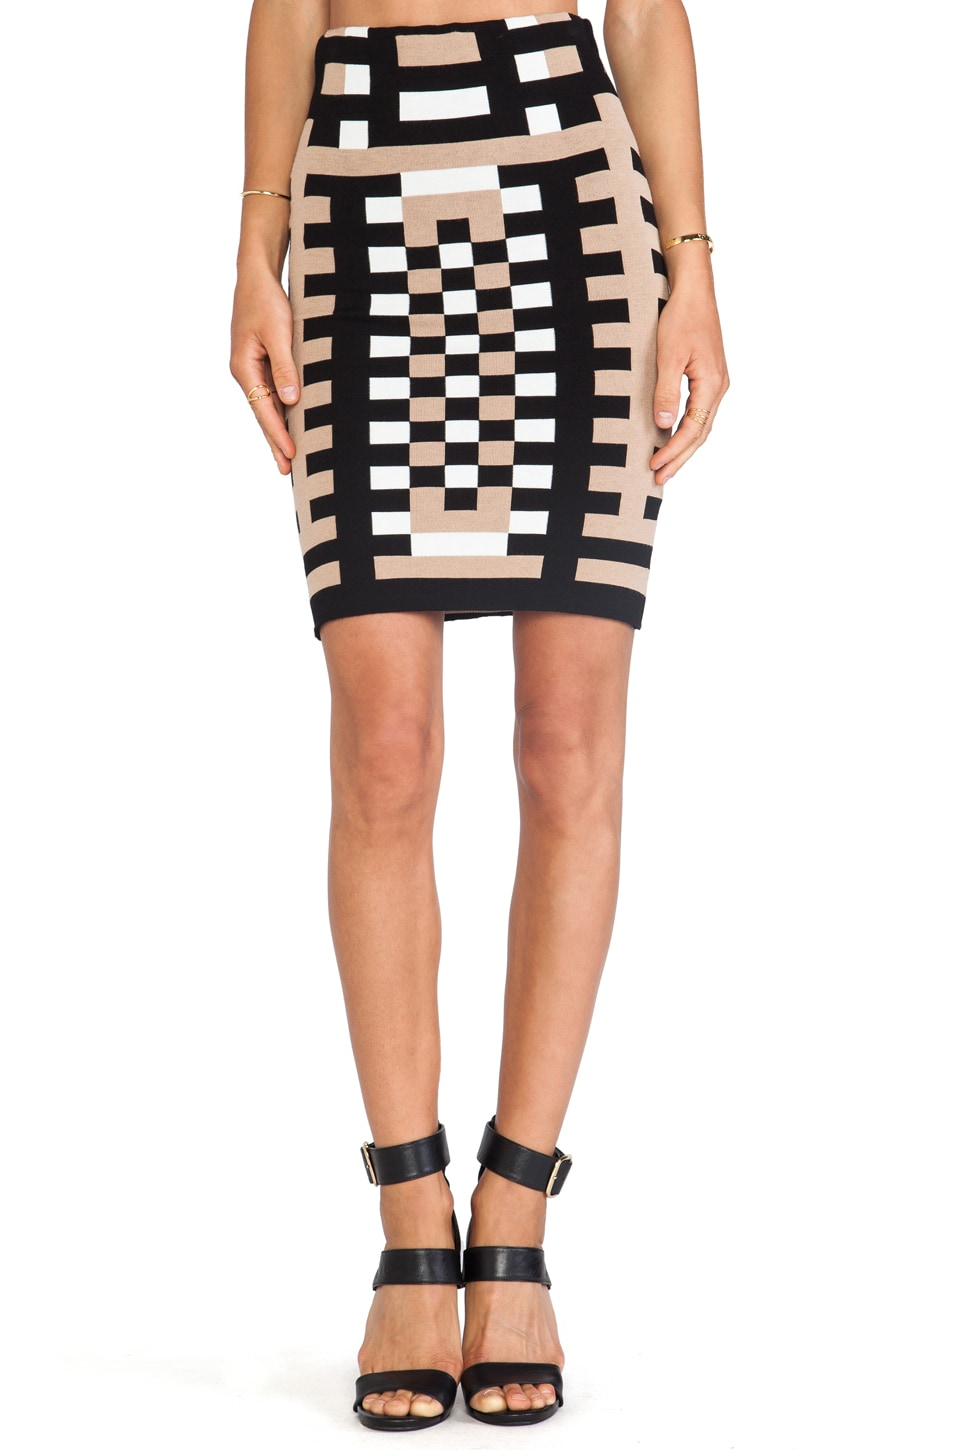 RVN Mondrian Jacquard 3/4 Length Sheath Skirt in Tan& Black & White